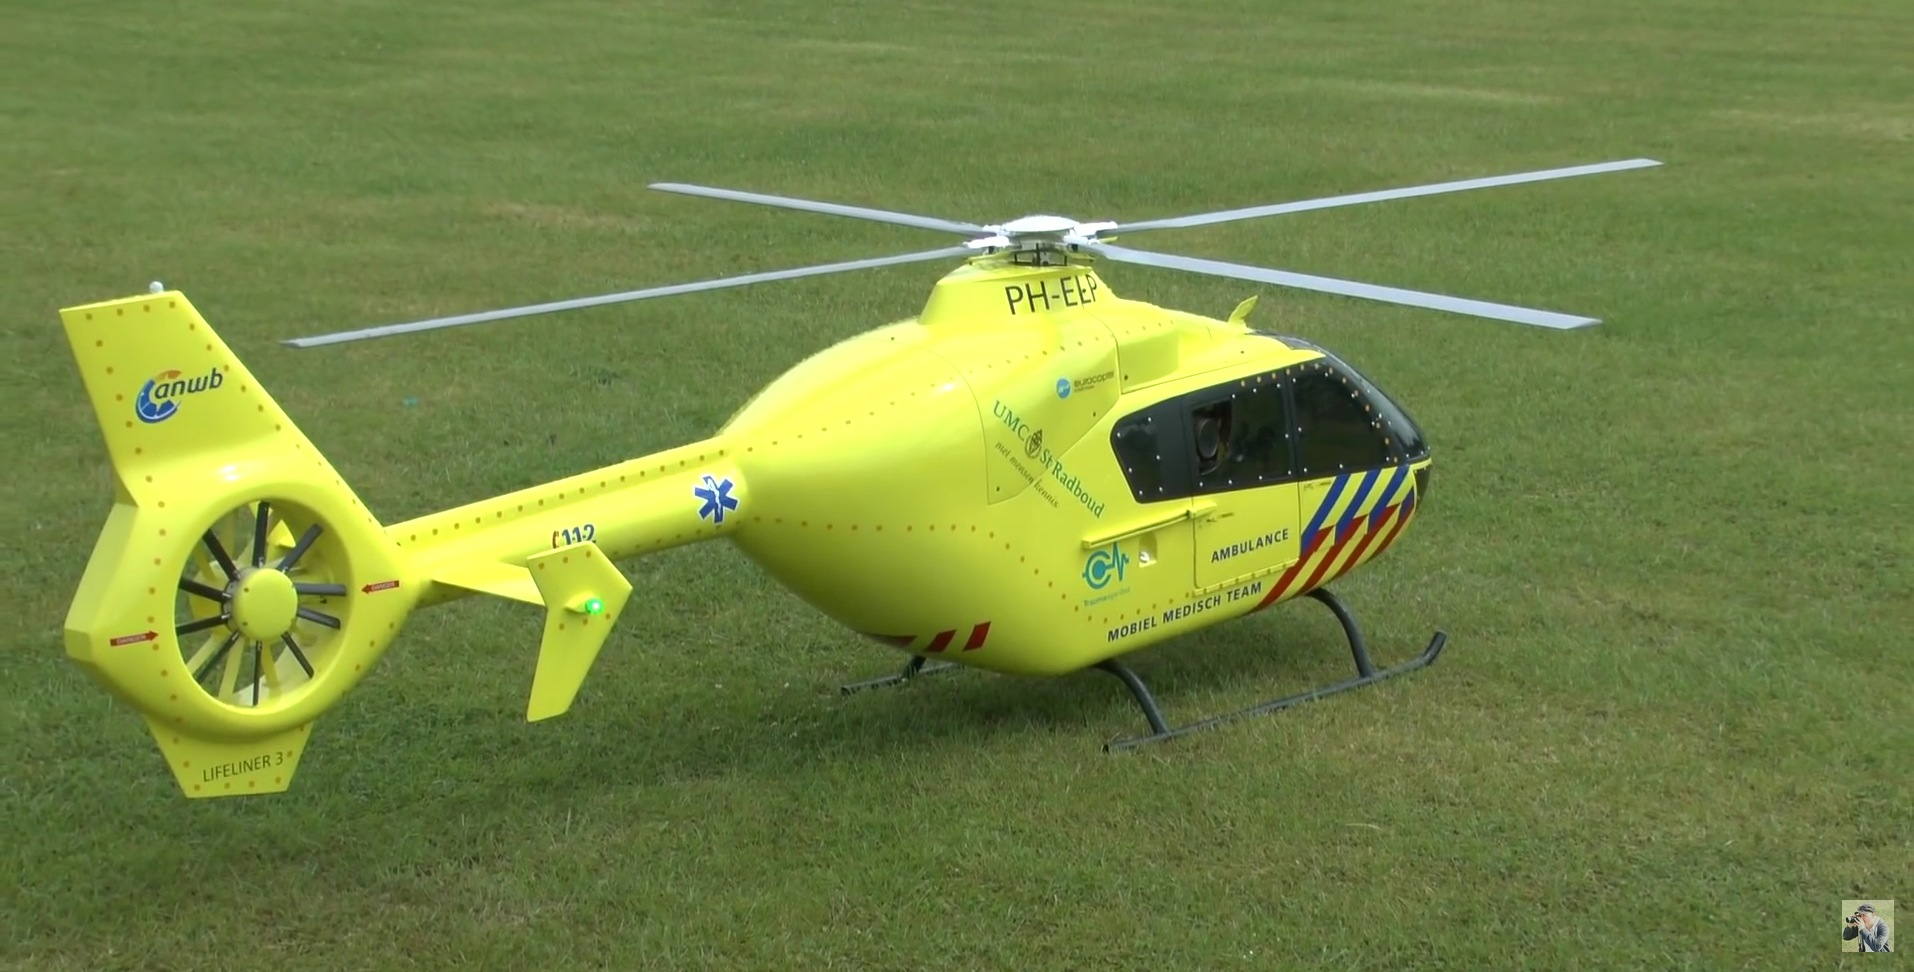 expensive rc helicopters with This Giant Scale Helicopter Is Big Enough To Kill People With Turbine Power Video 97374 on Bell 20222 20  20Trainer likewise 17451517277892061 likewise Gray Design Yacht Voiture De Sport Luxe 1034 further This Giant Scale Helicopter Is Big Enough To Kill People With Turbine Power Video 97374 in addition Military desktop wallpaper.